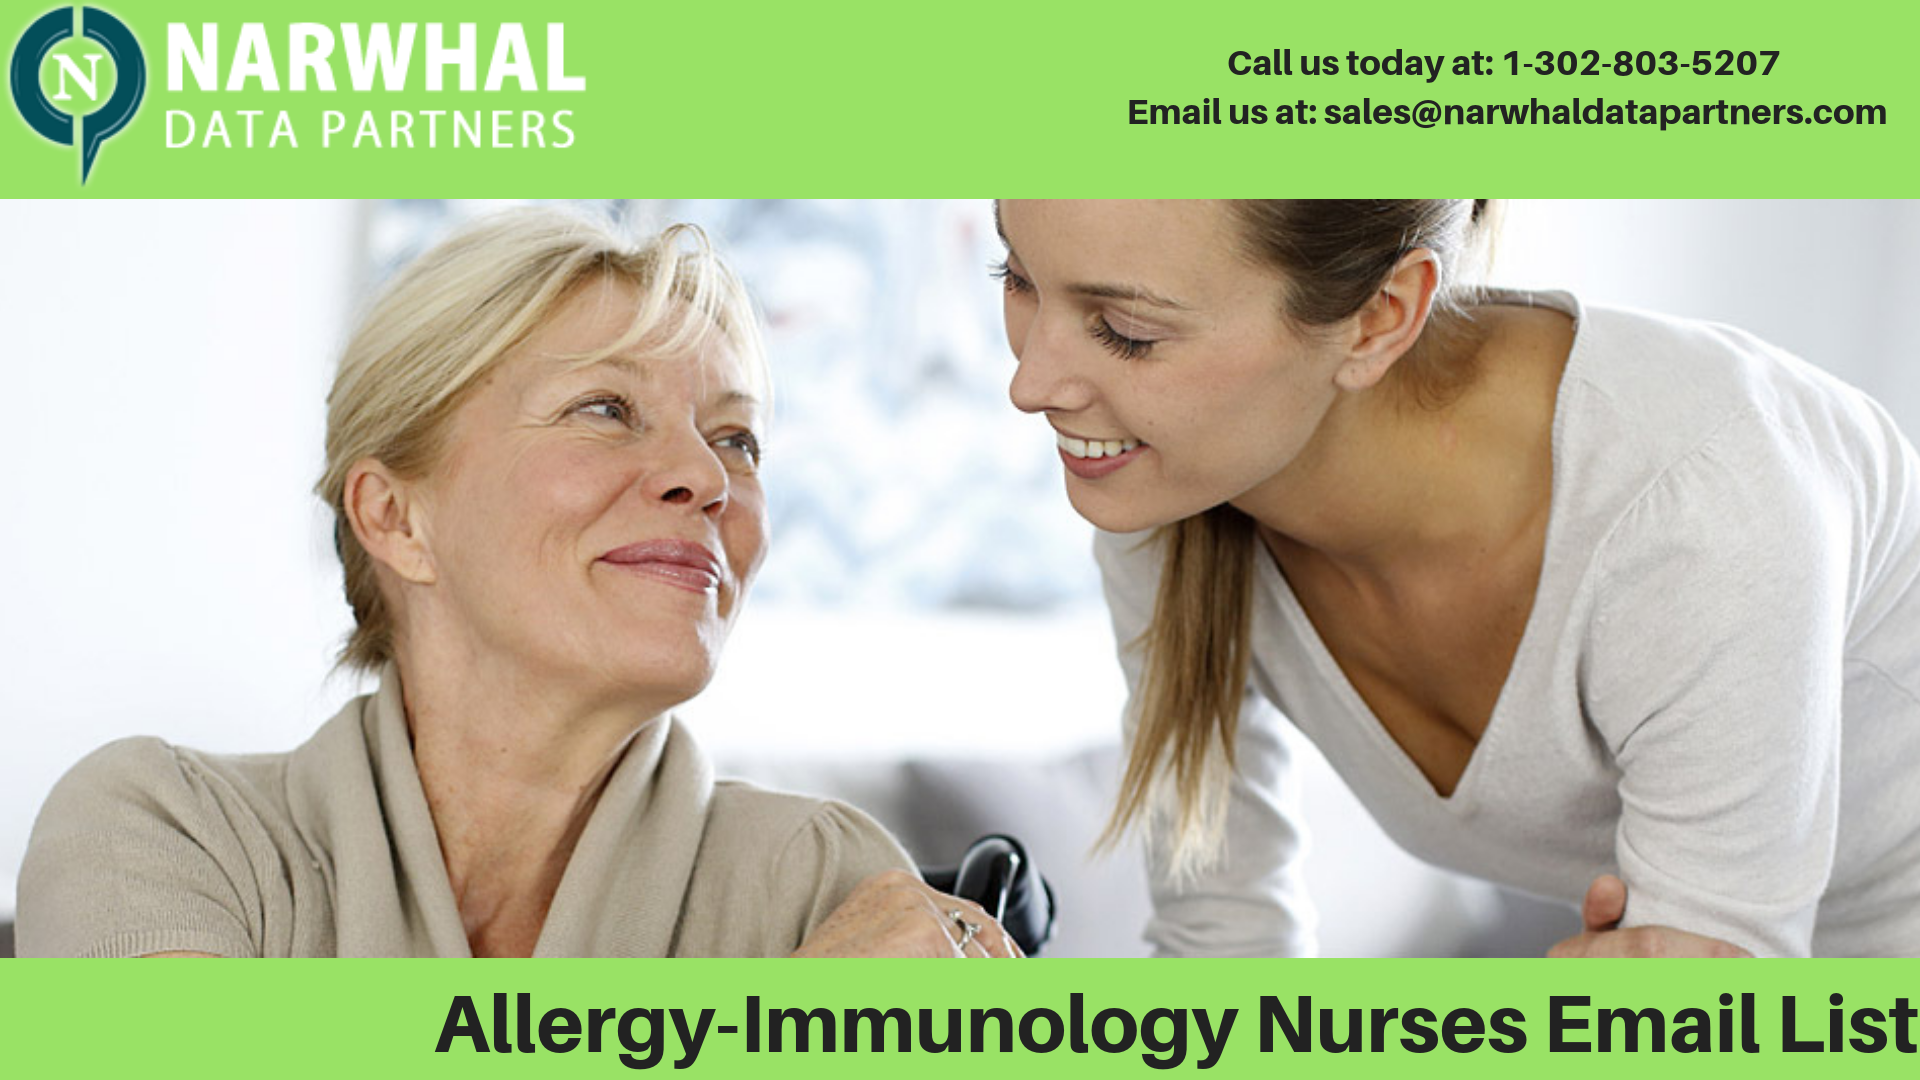 http://narwhaldatapartners.com/allergy-immunology-nurses-email-list.html